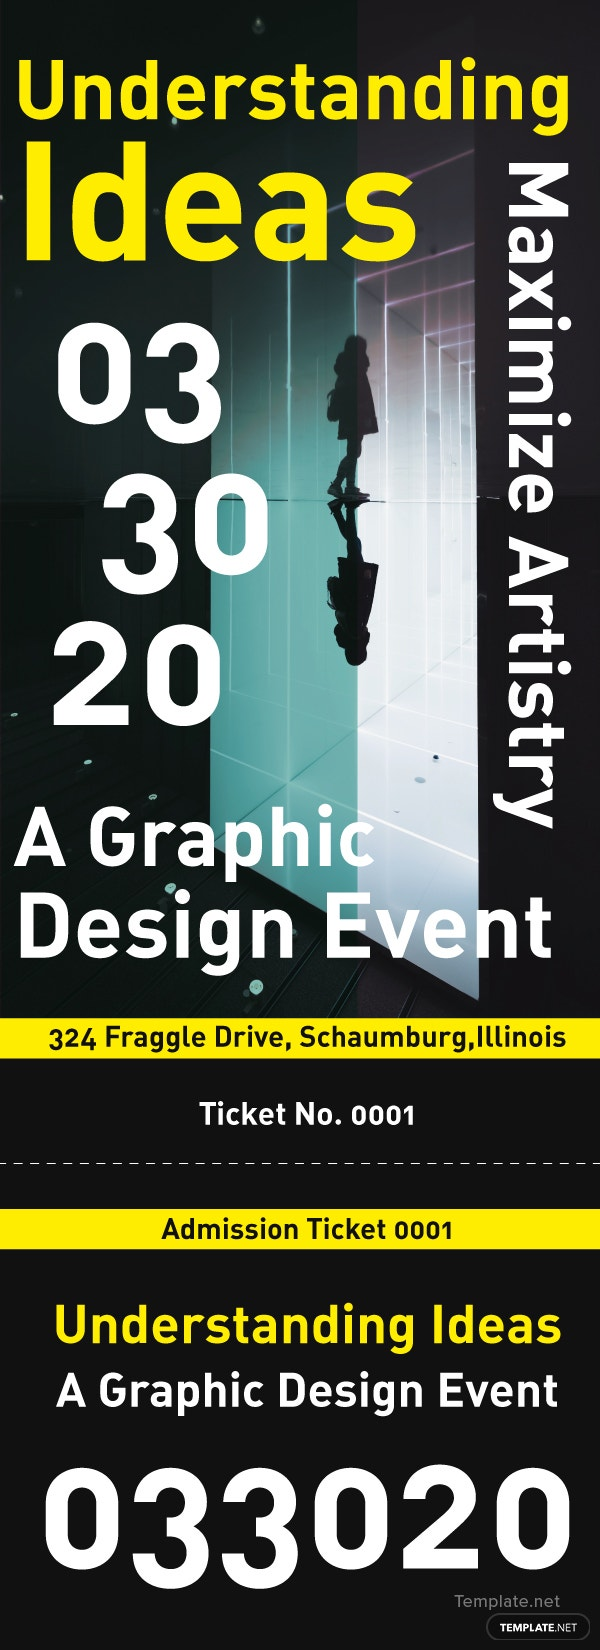 Free Event Admission Ticket Template in Adobe Photoshop, Microsoft ...